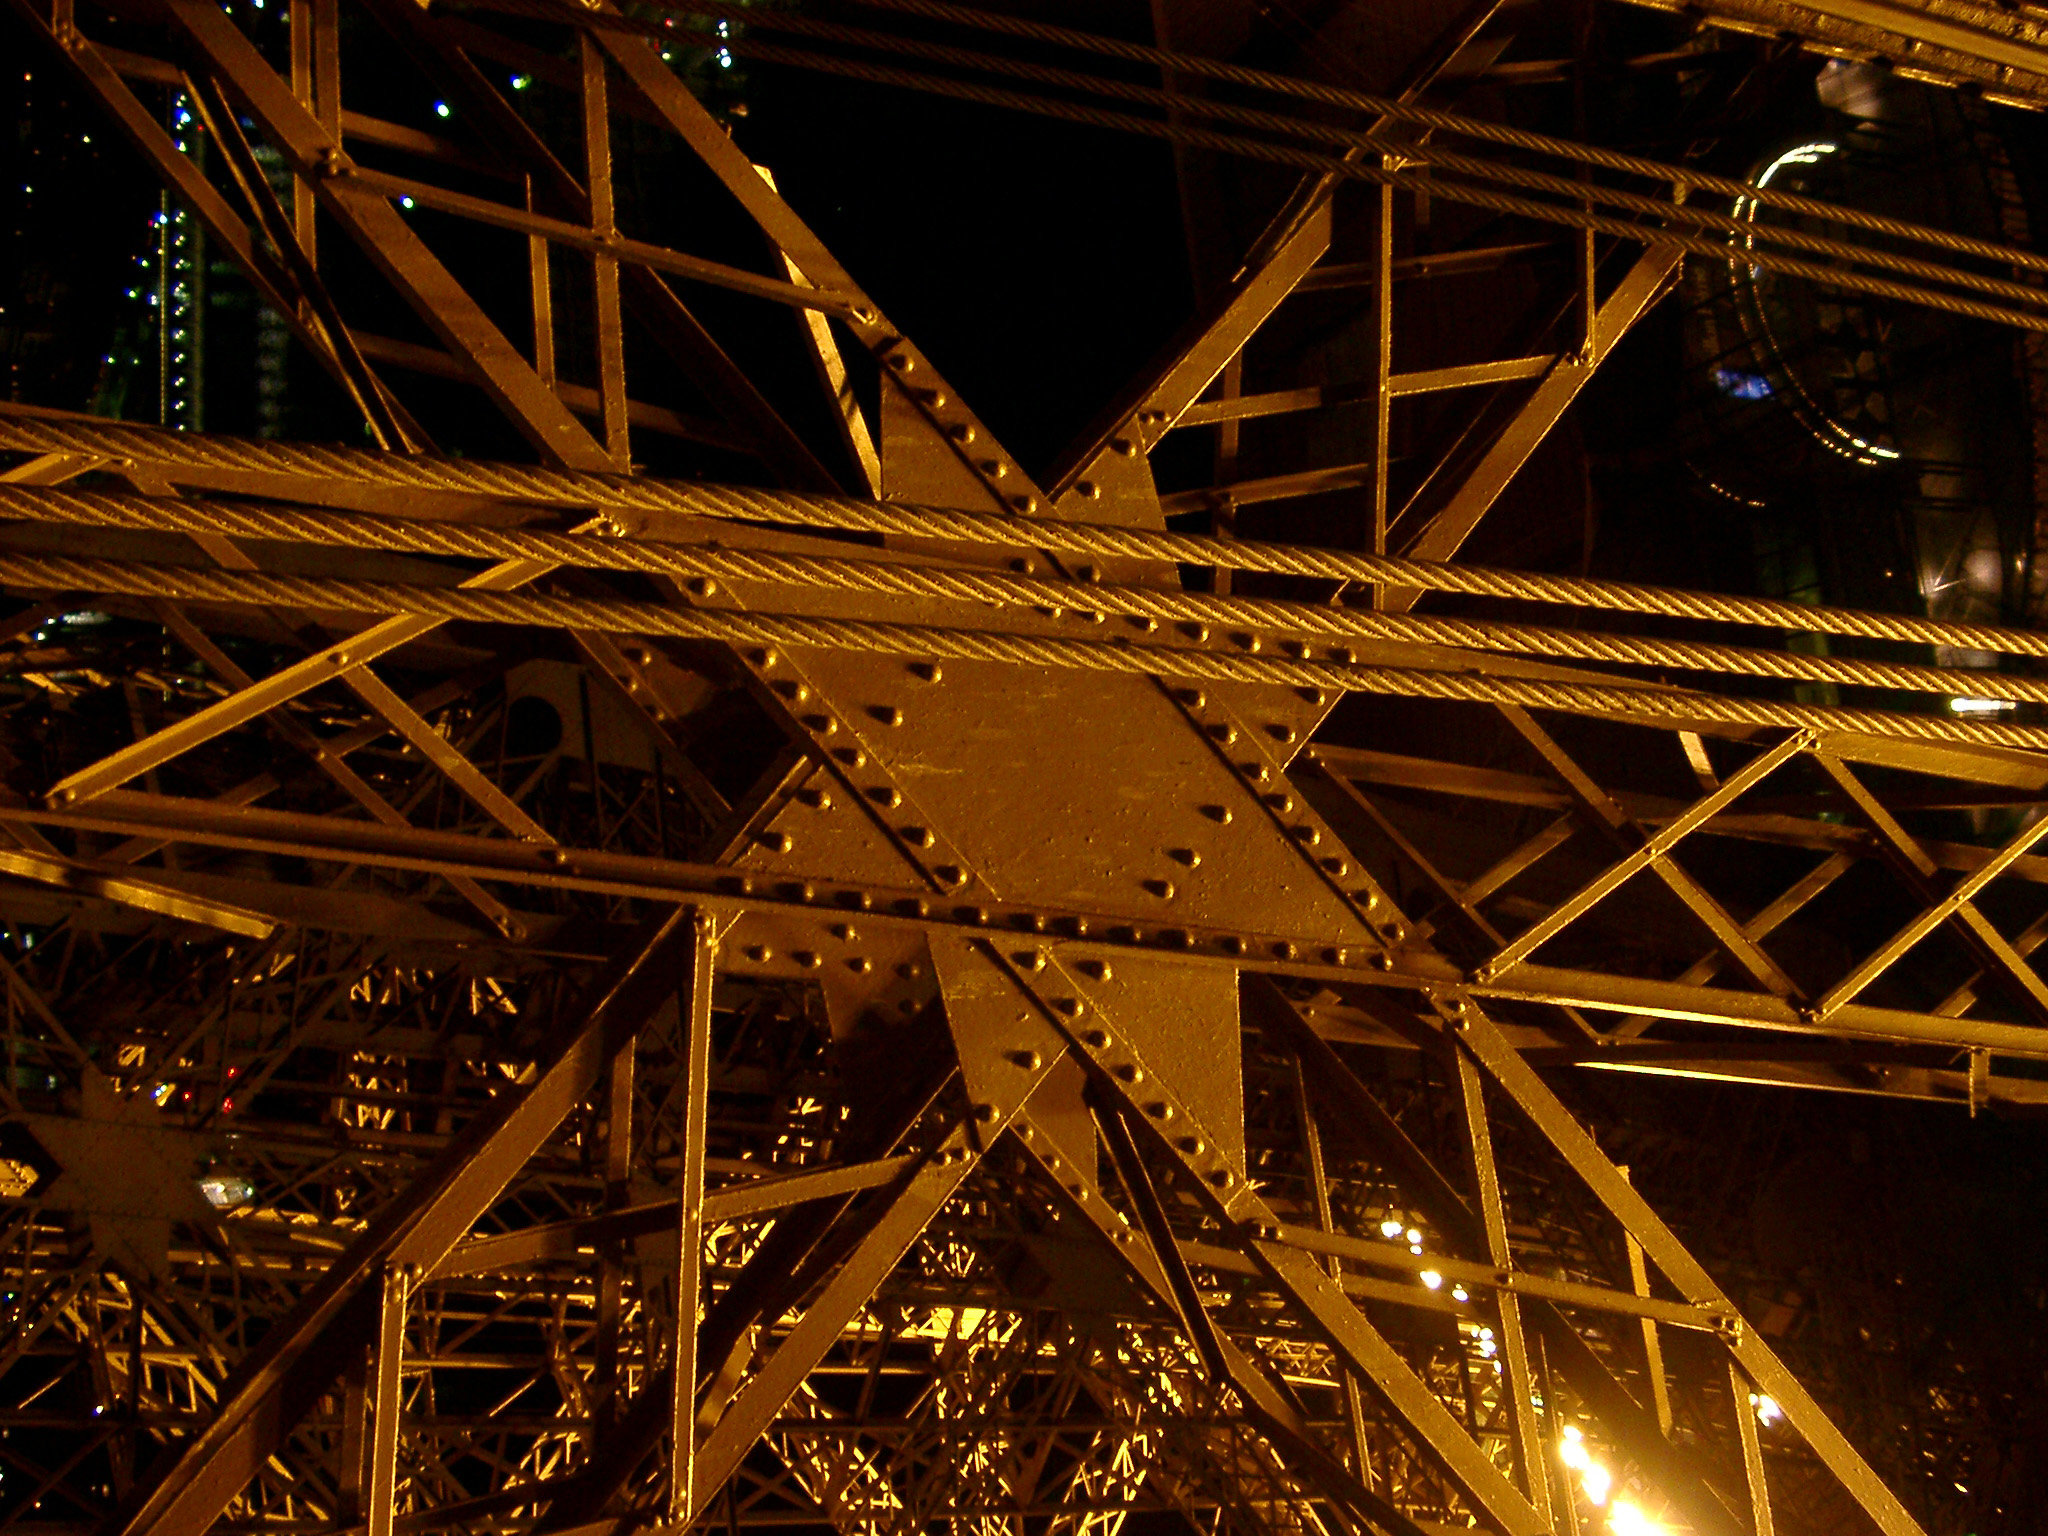 Close Up of Eiffel Tower Iron Lattice Structure with floodlights peeking through, Paris, France